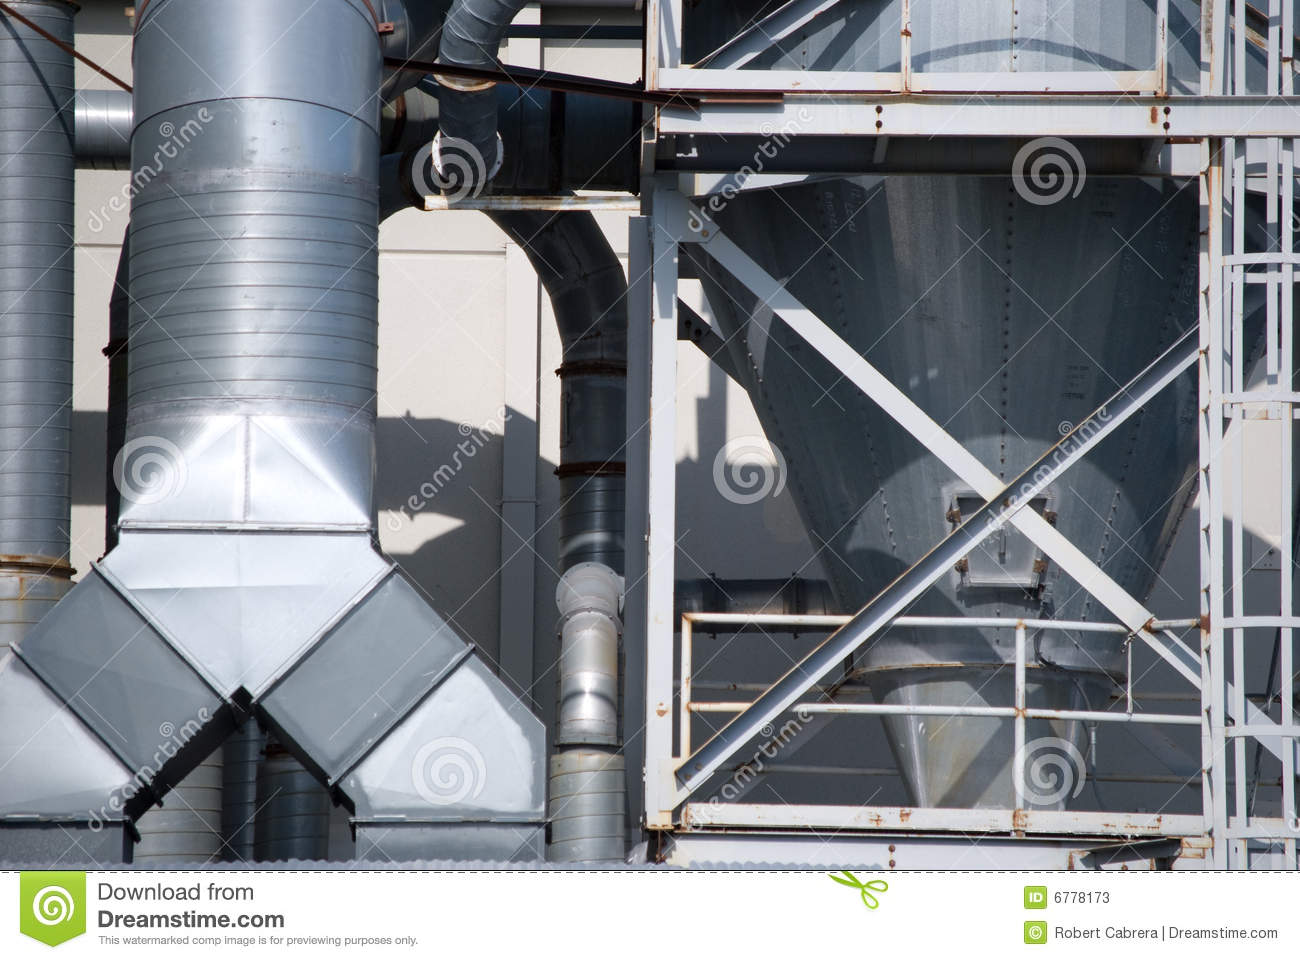 Industrial air conditioner duct work stock image